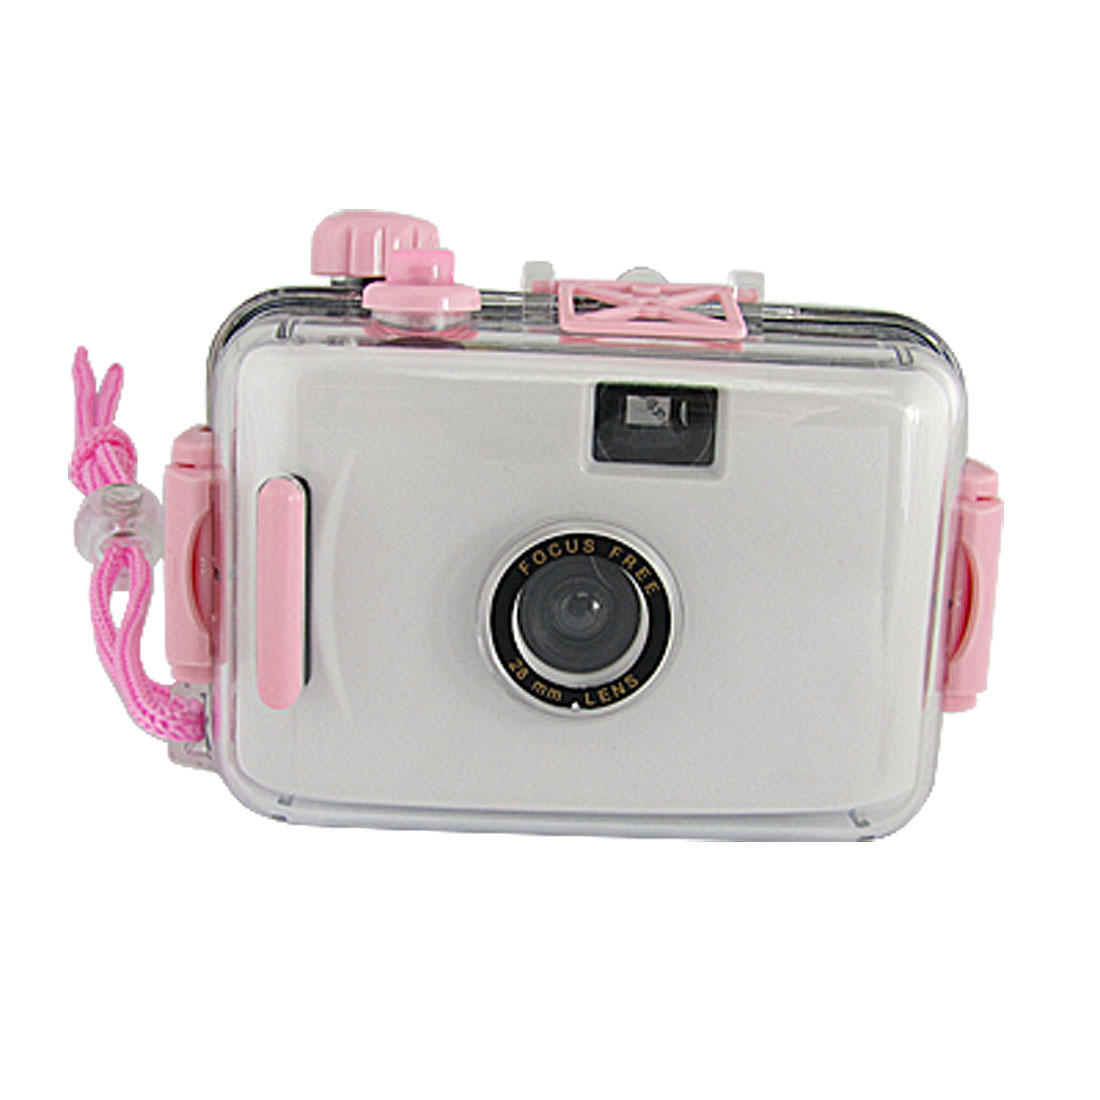 White Emulational Camera Toy + Waterproof Casing